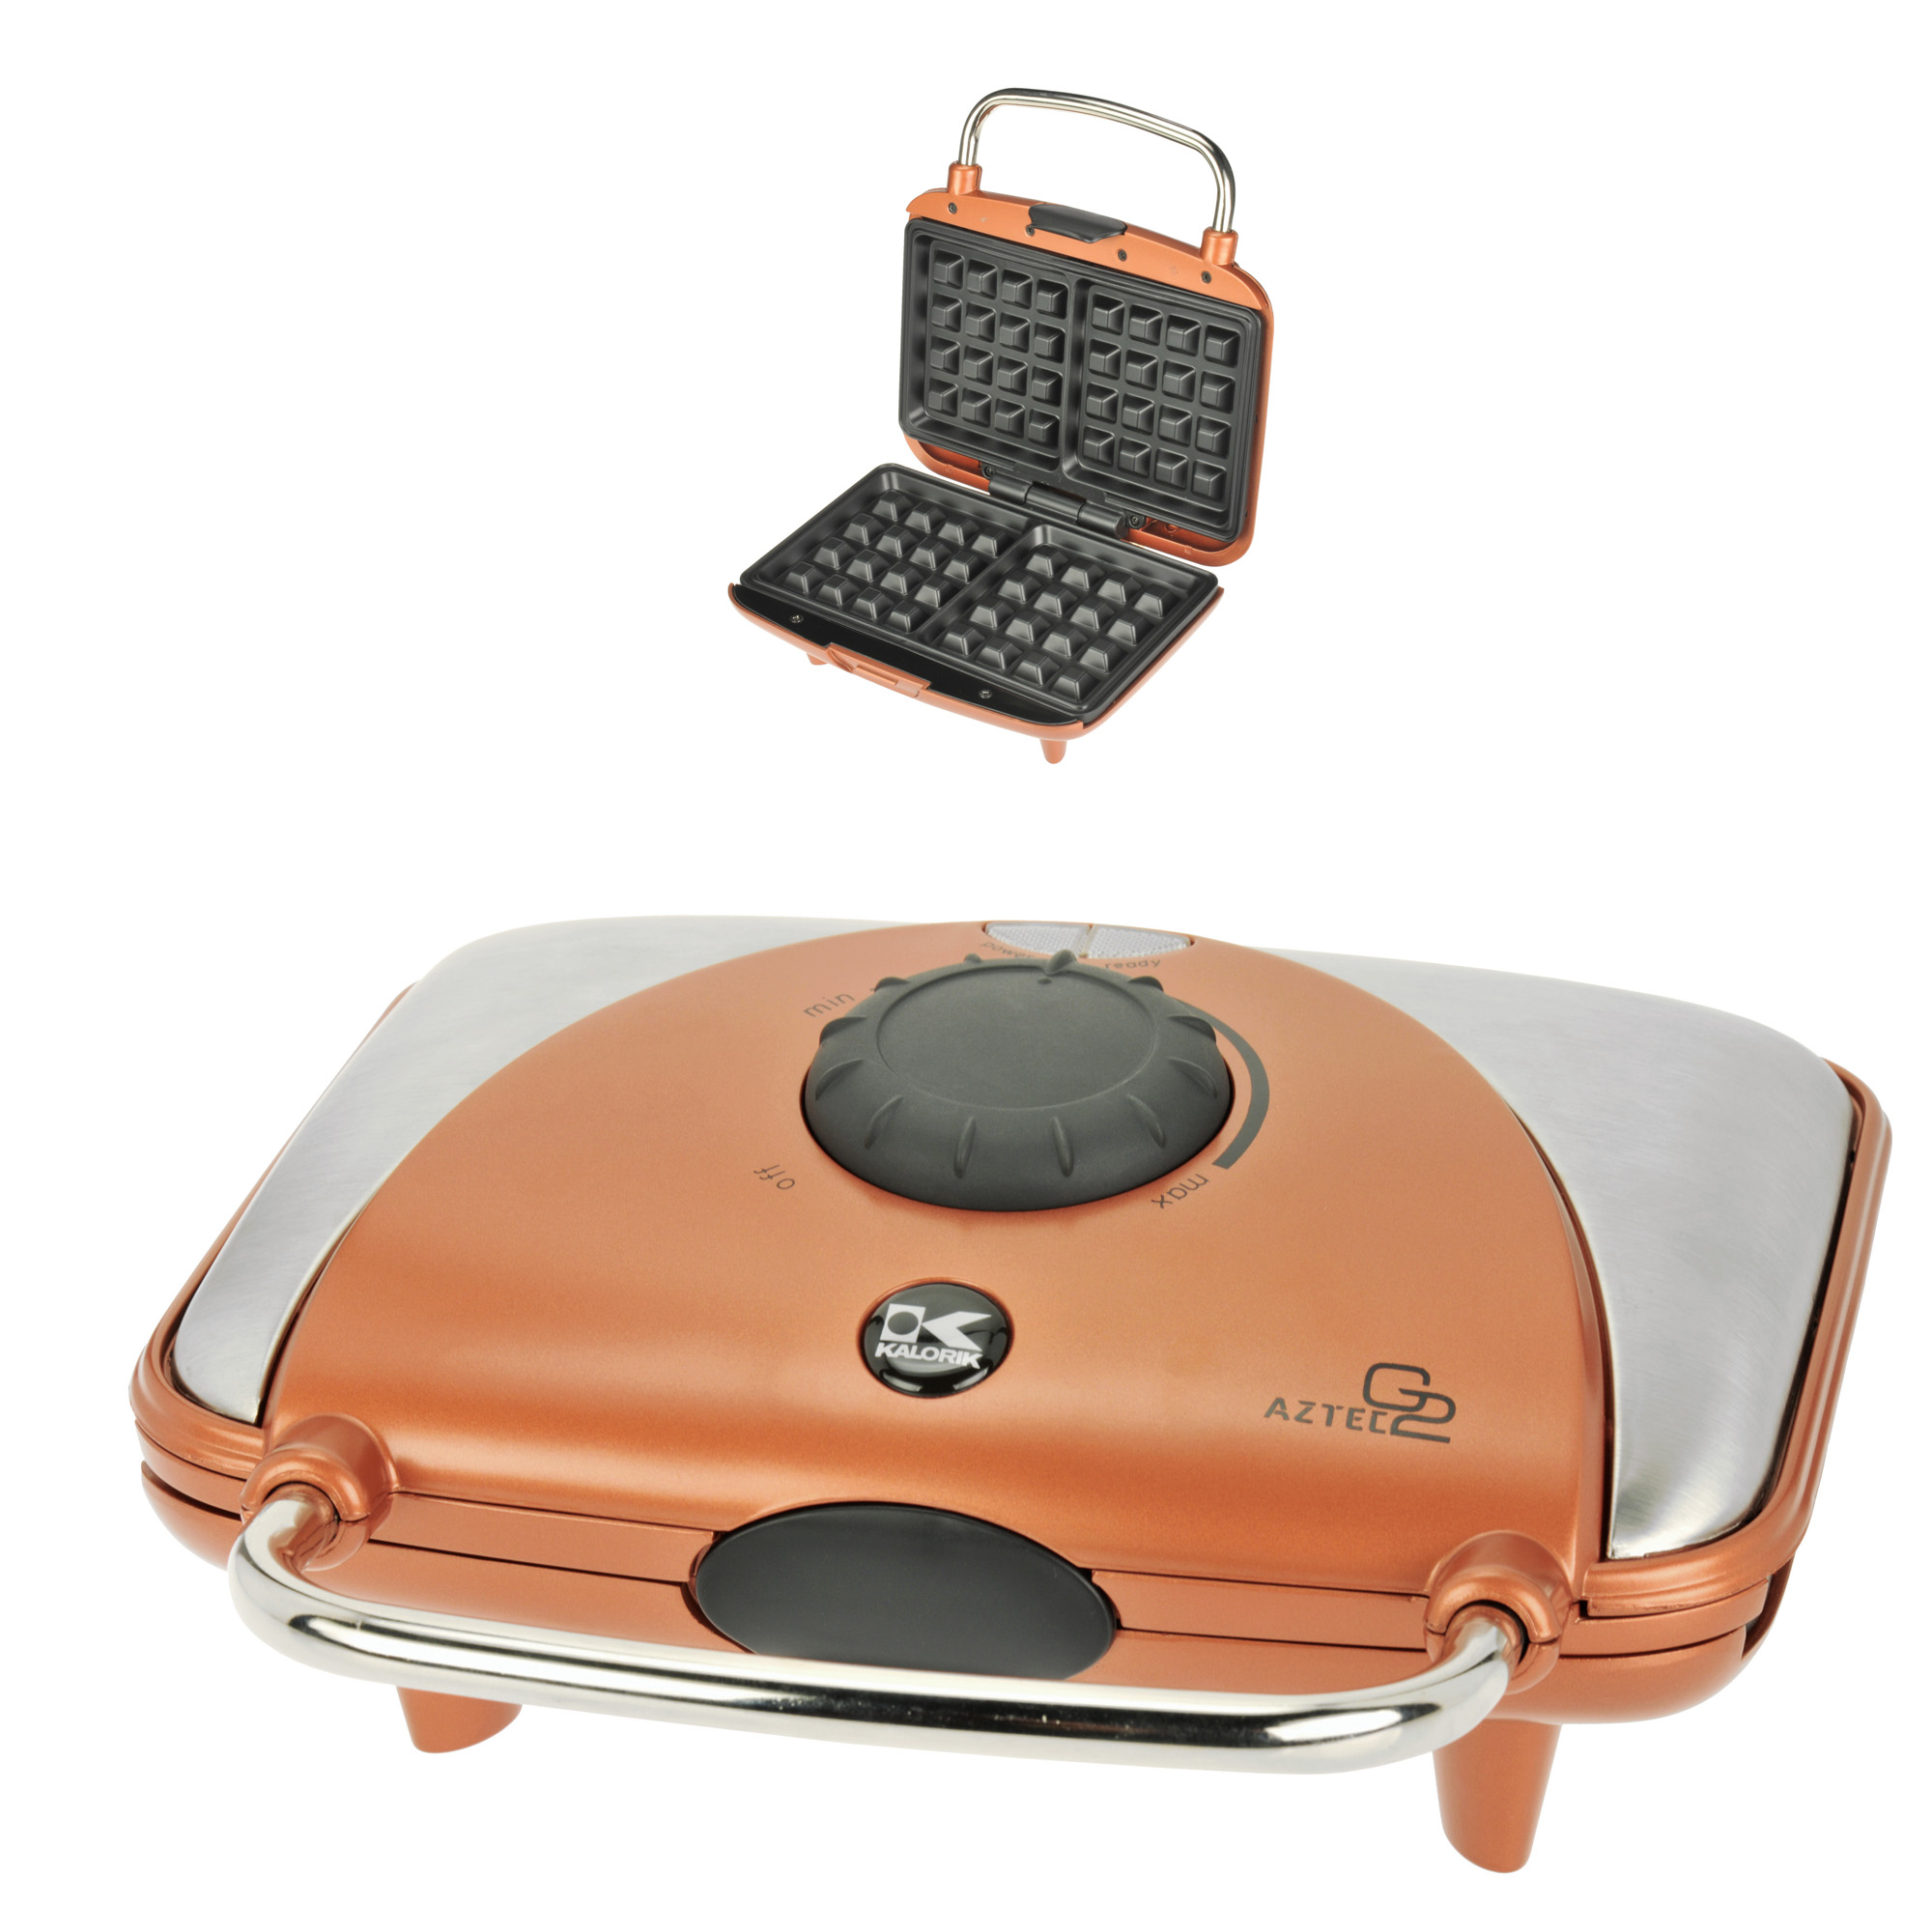 Here at the Waffle Makers & Irons Store you'll find all the top-rated waffle makers and irons from the best brands.